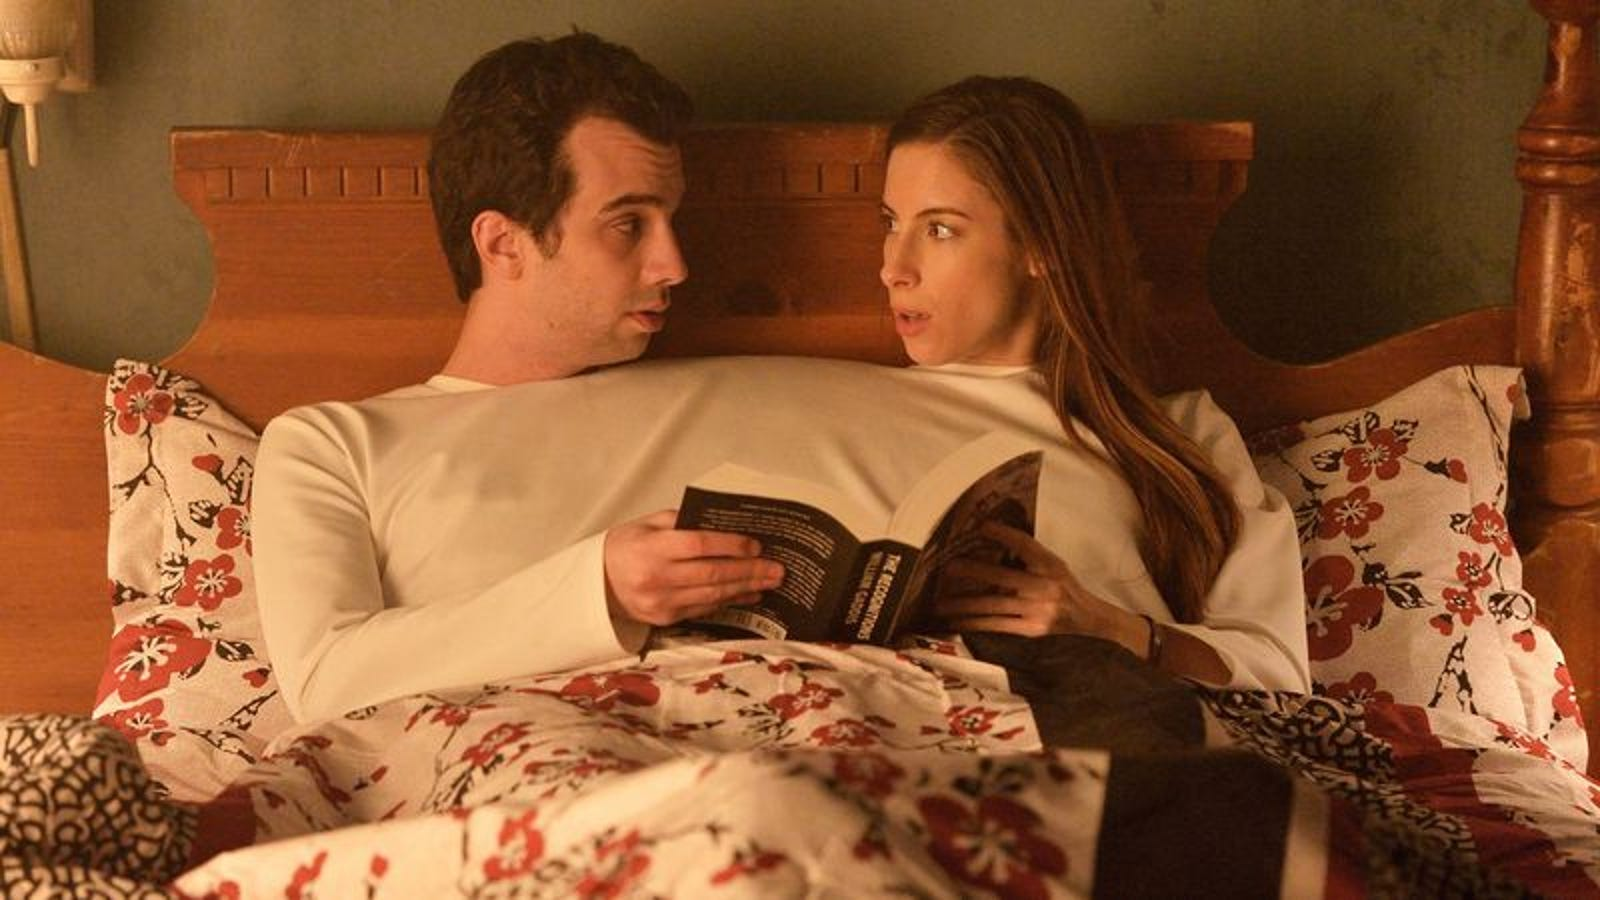 Man seeking women review